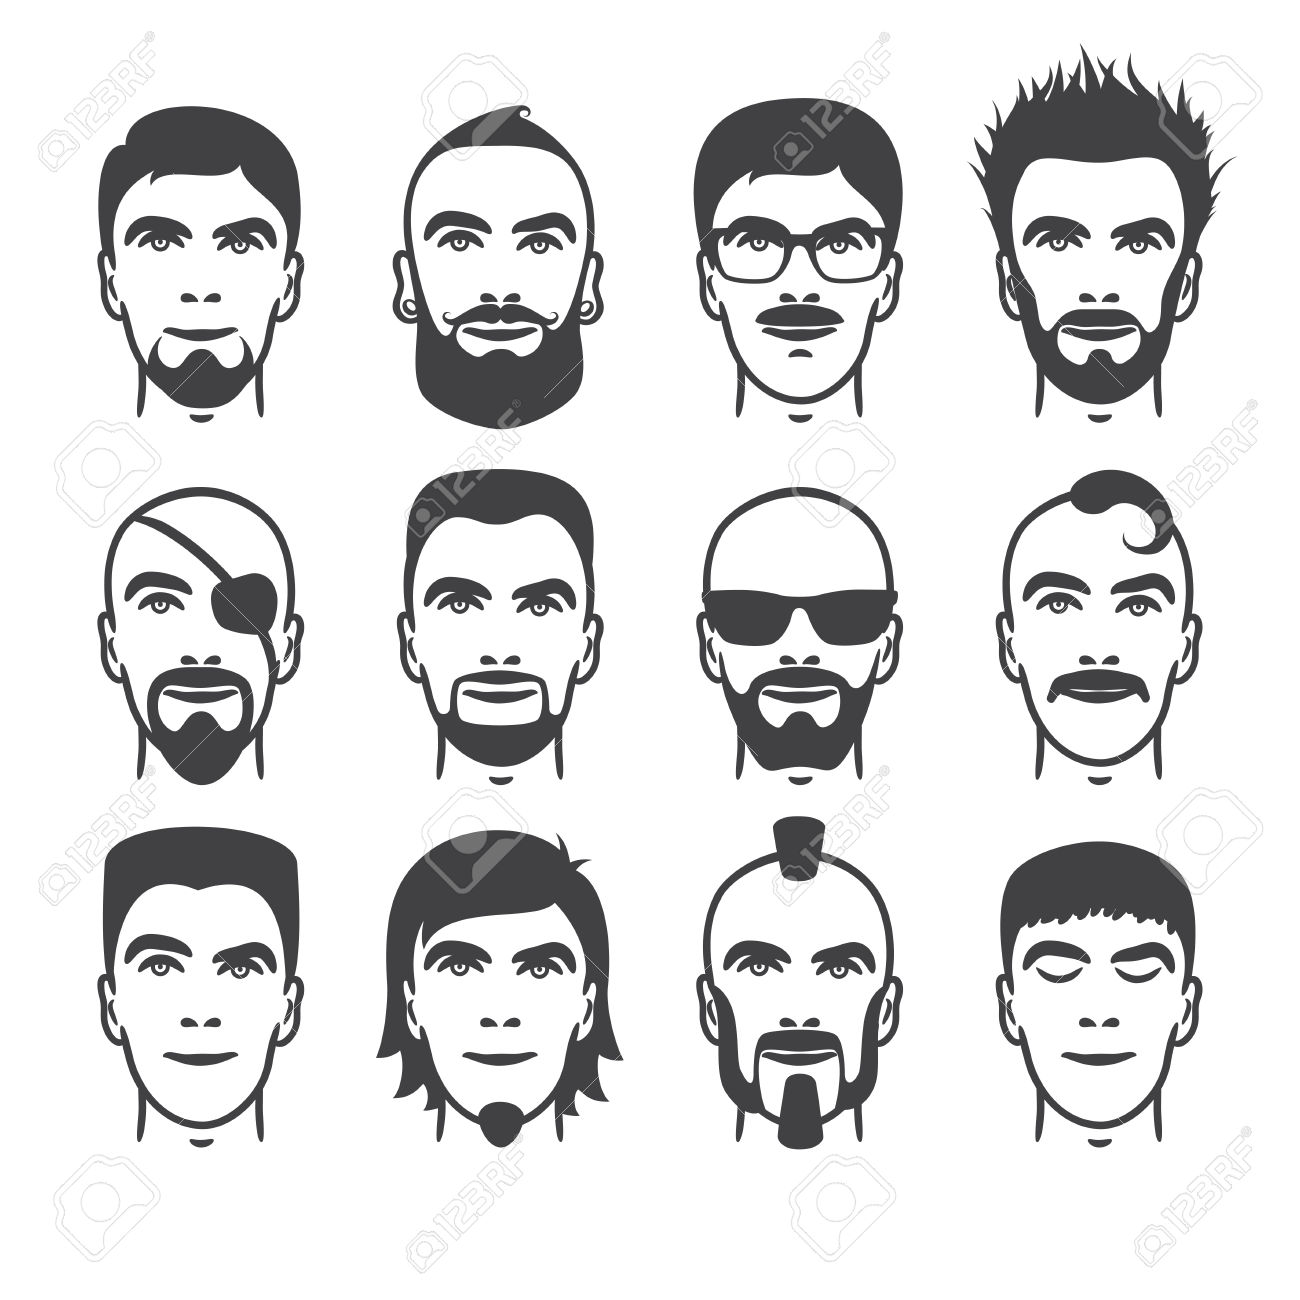 Beard clipart hairstyle transparent male #8